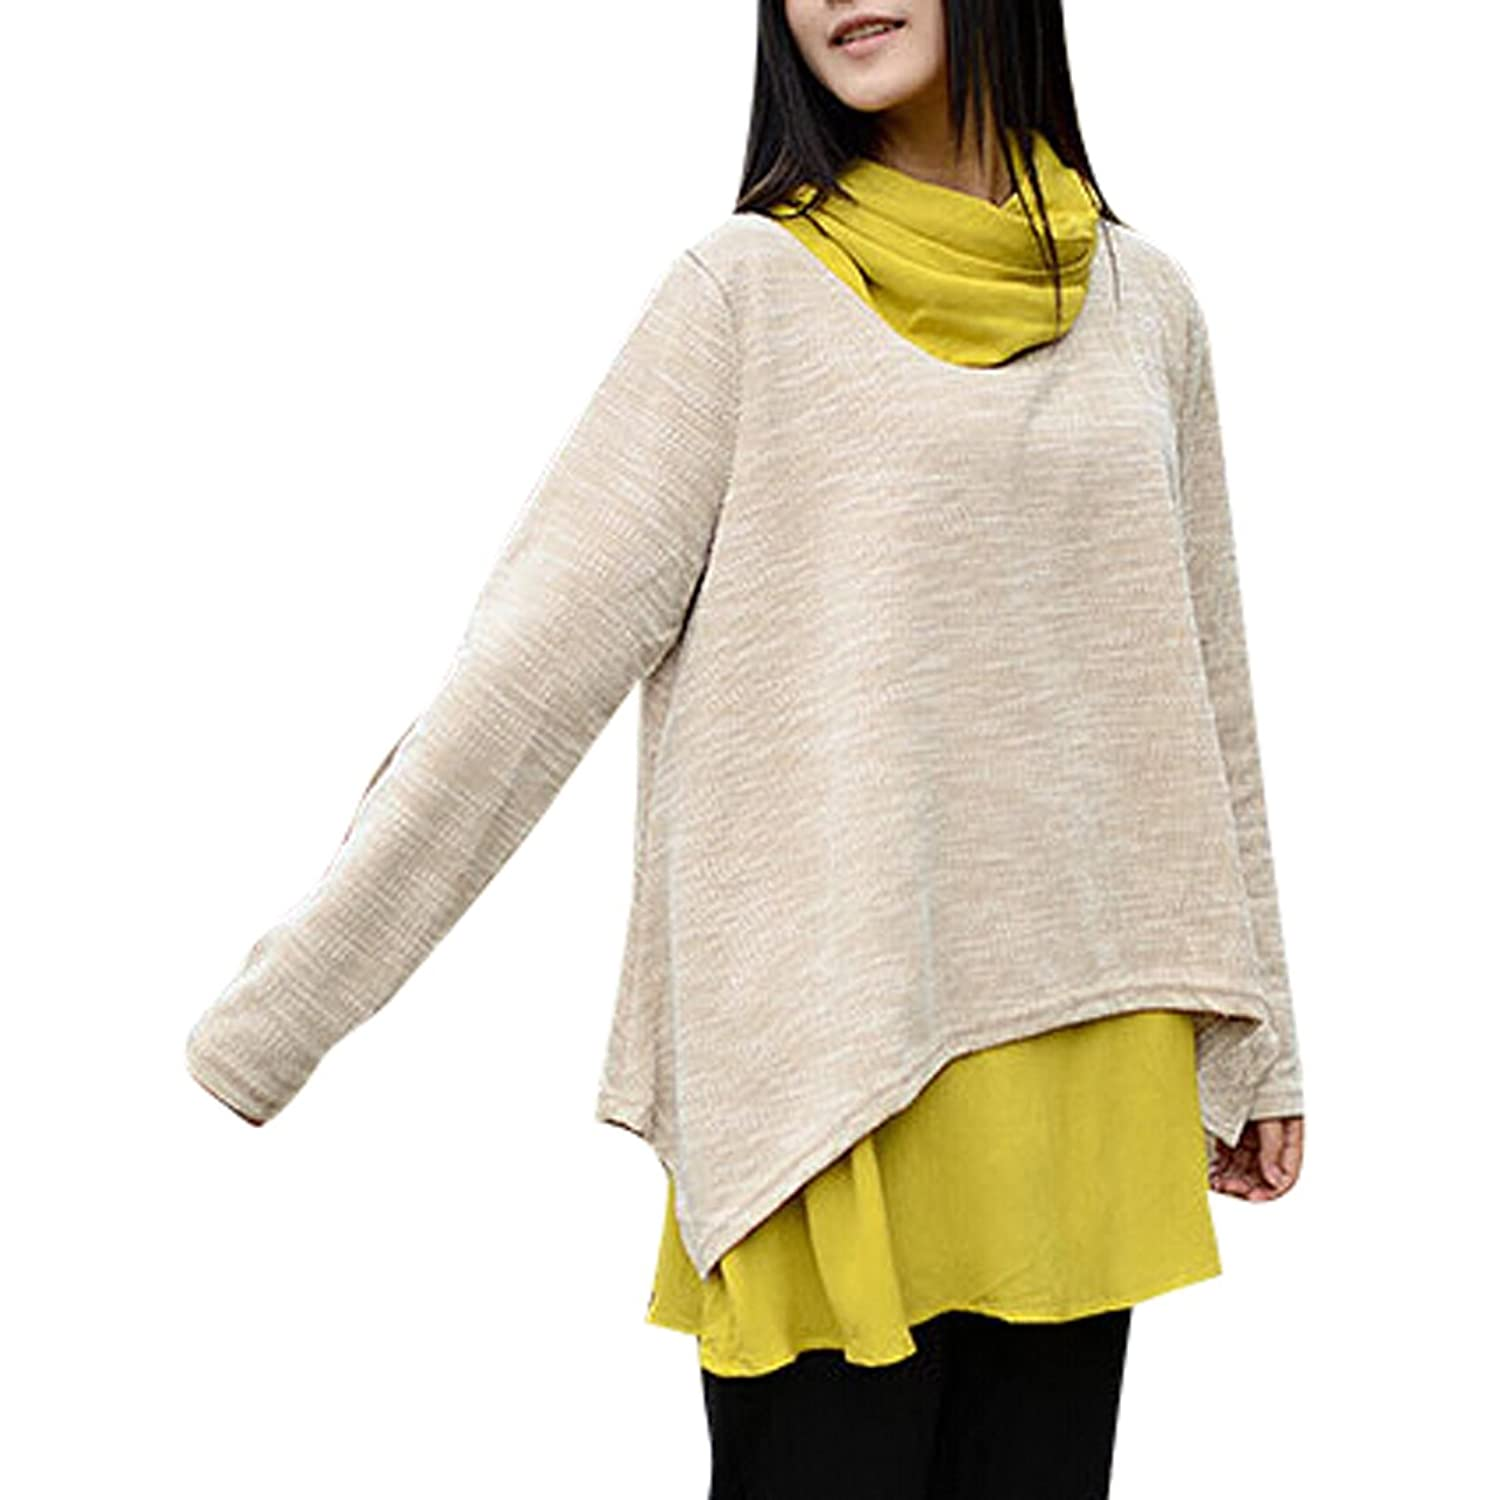 Artcar Women's Casual False Two-piece Mock Neck Matching Pullover Top Blouse